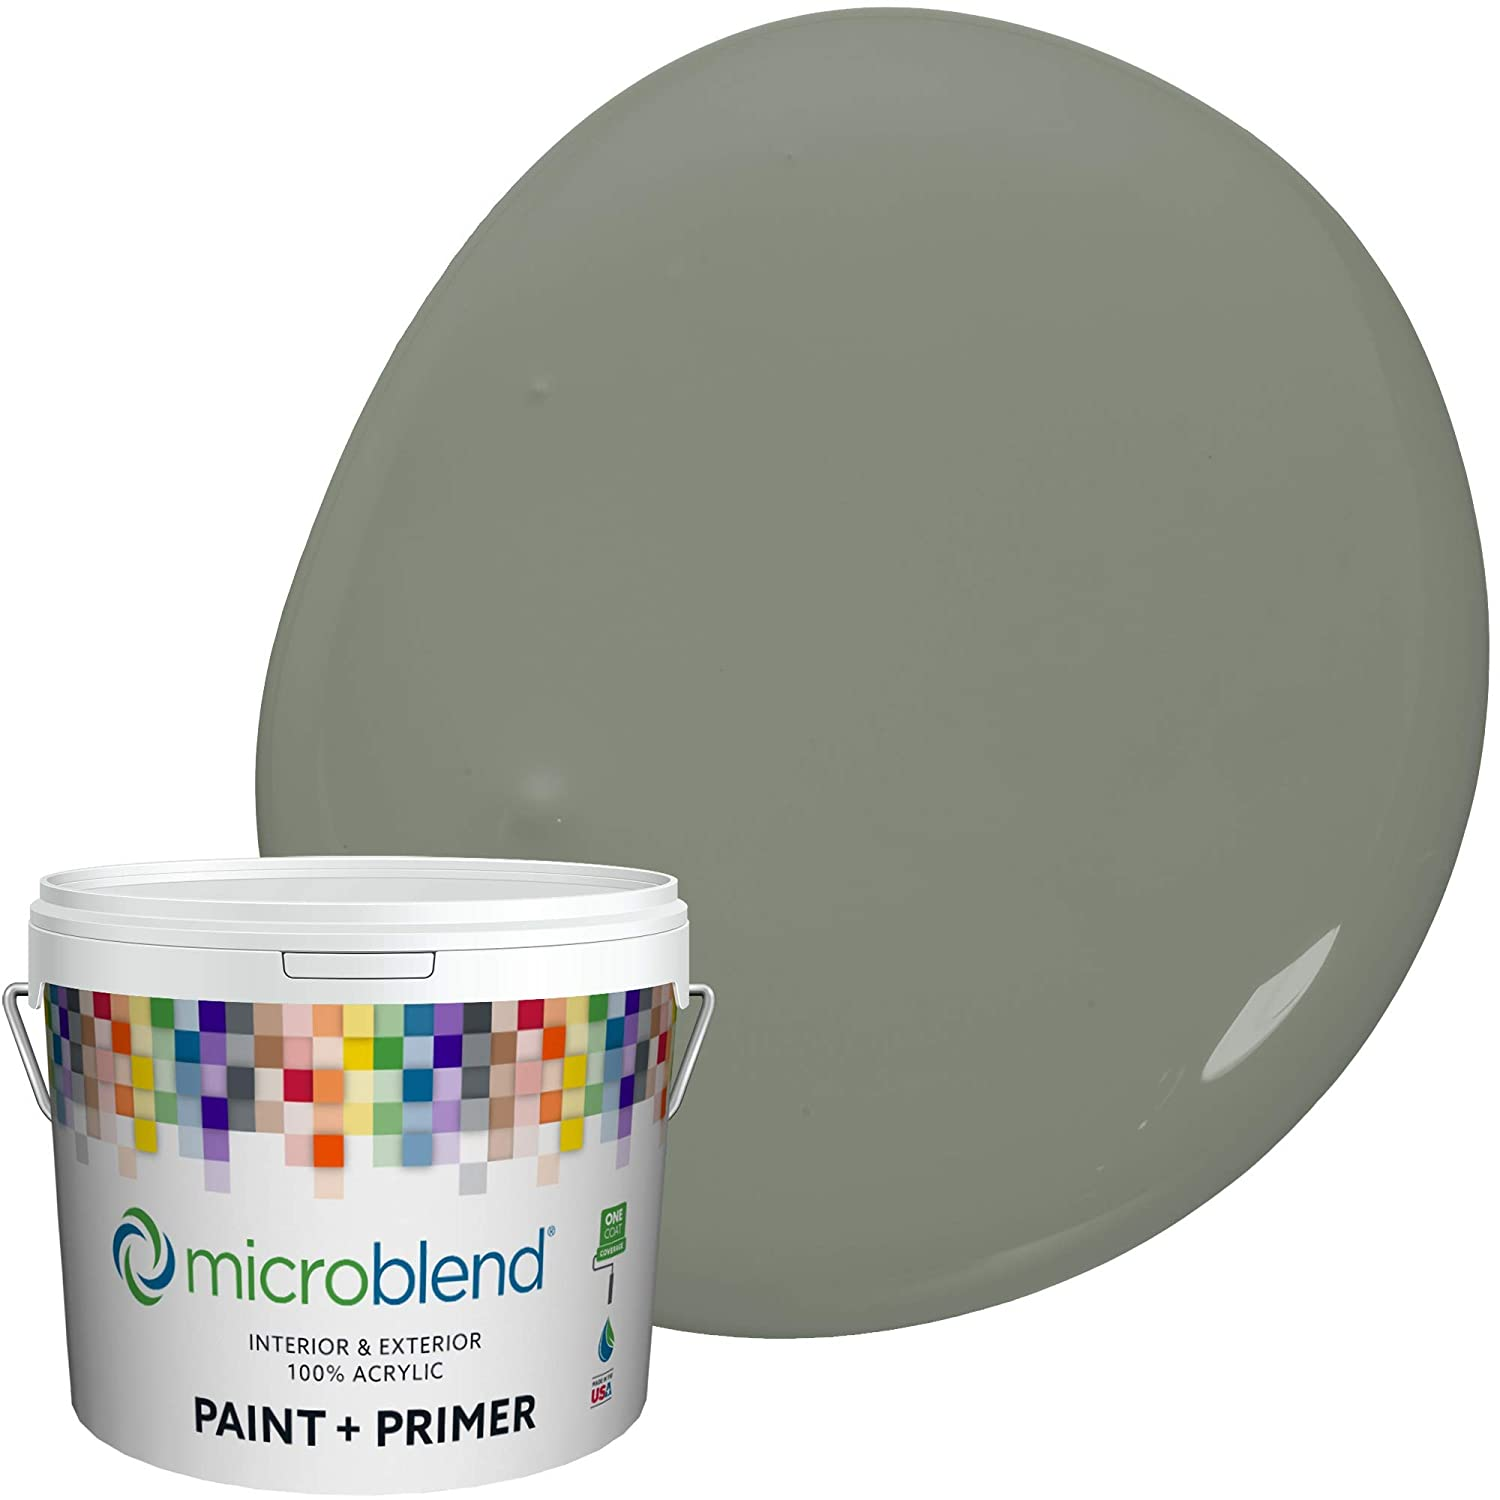 Microblend Interior Paint and Primer - Sage/Jade Magic, Semi-Gloss Sheen, 1-Gallon, Premium Quality, One Coat Hide, Low VOC, Washable, Microblend Neutrals Family